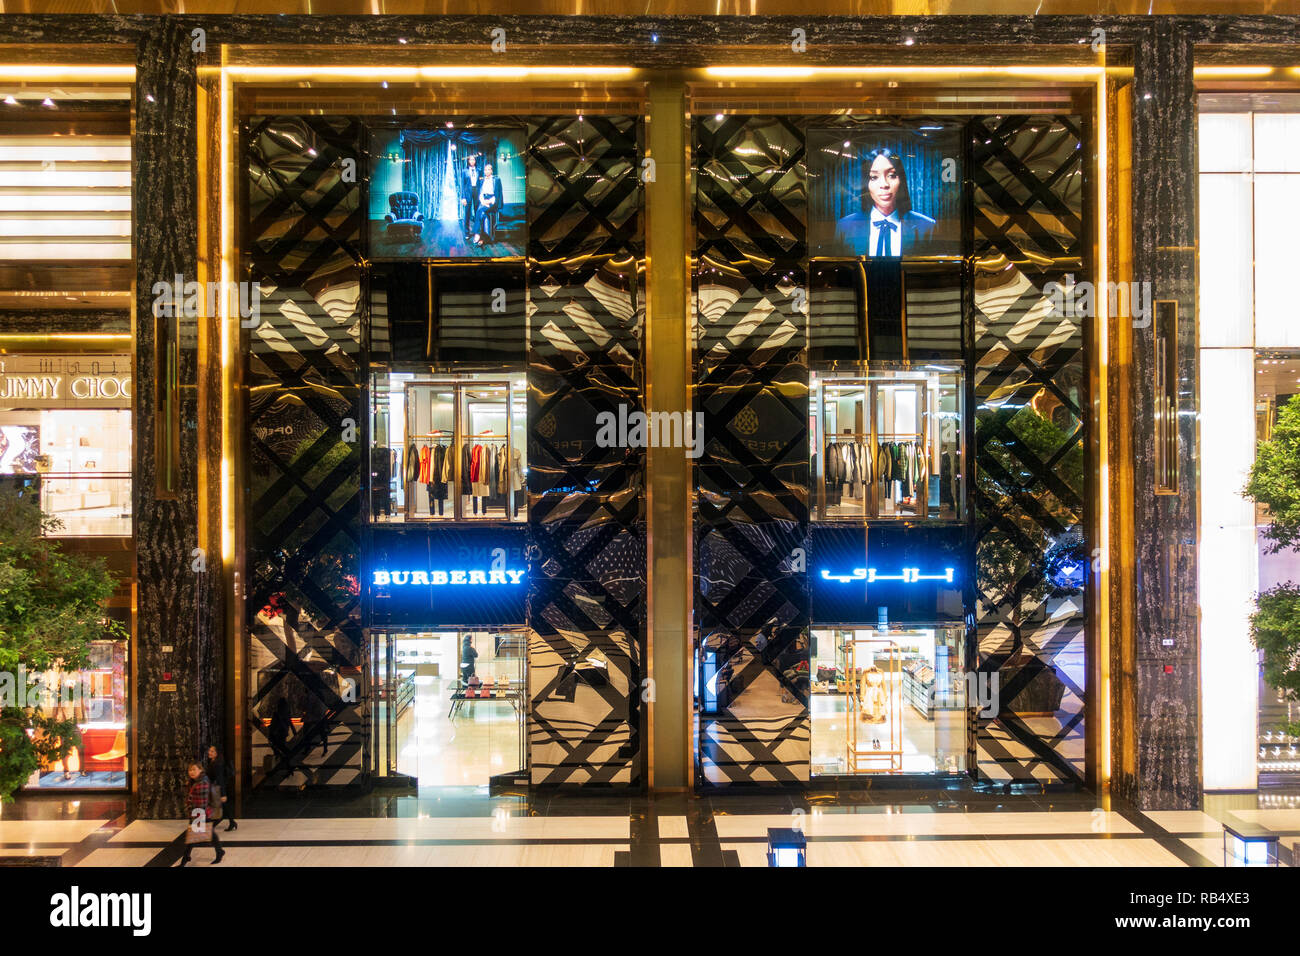 Burberry store in the  new Prestige luxury arcade with high-end boutiques inside The Avenues shopping mall in Kuwait City, Kuwait - Stock Image